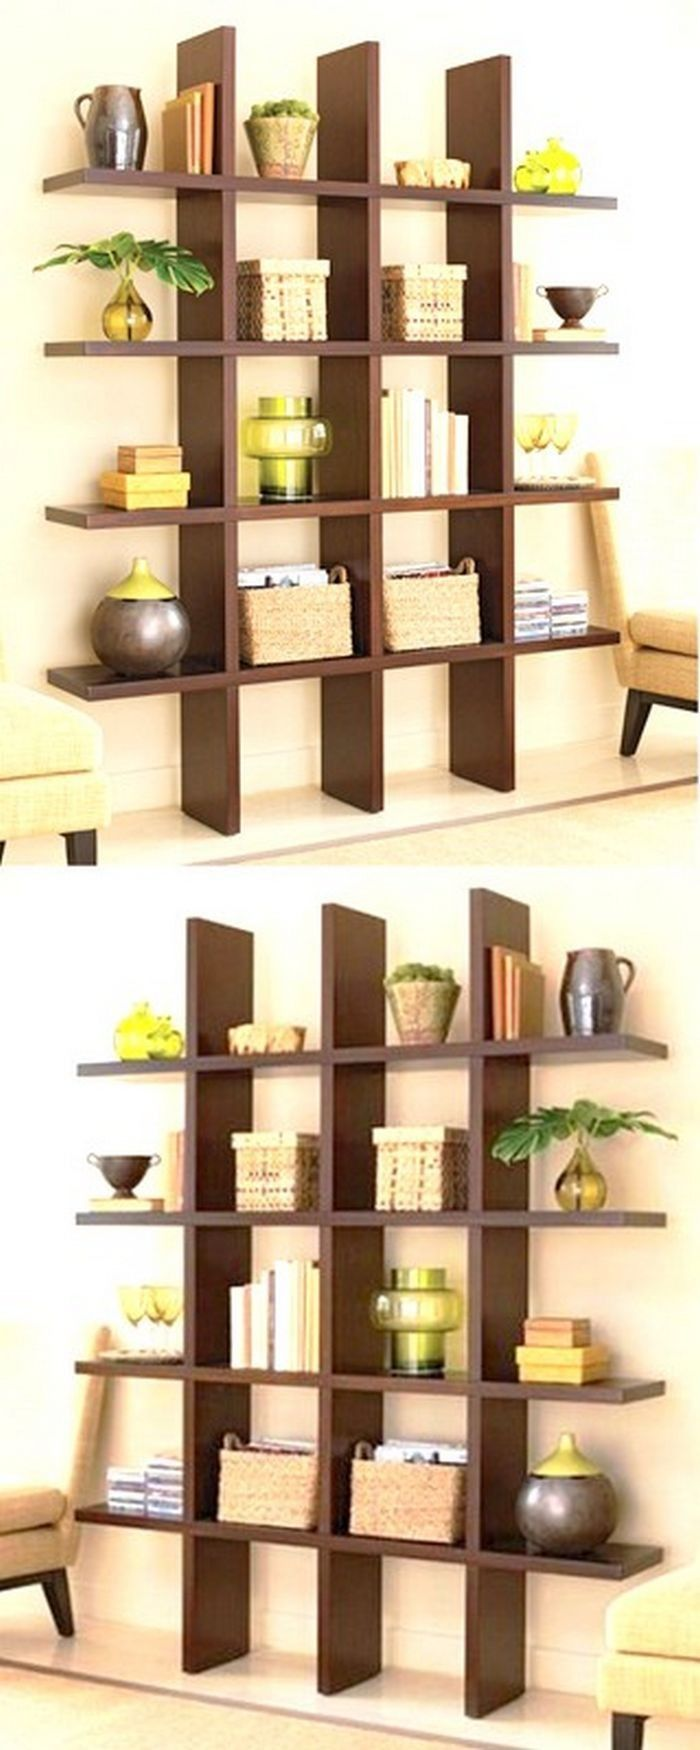 Awesome Pallet Shelves | Pallet Furniture Int/ext